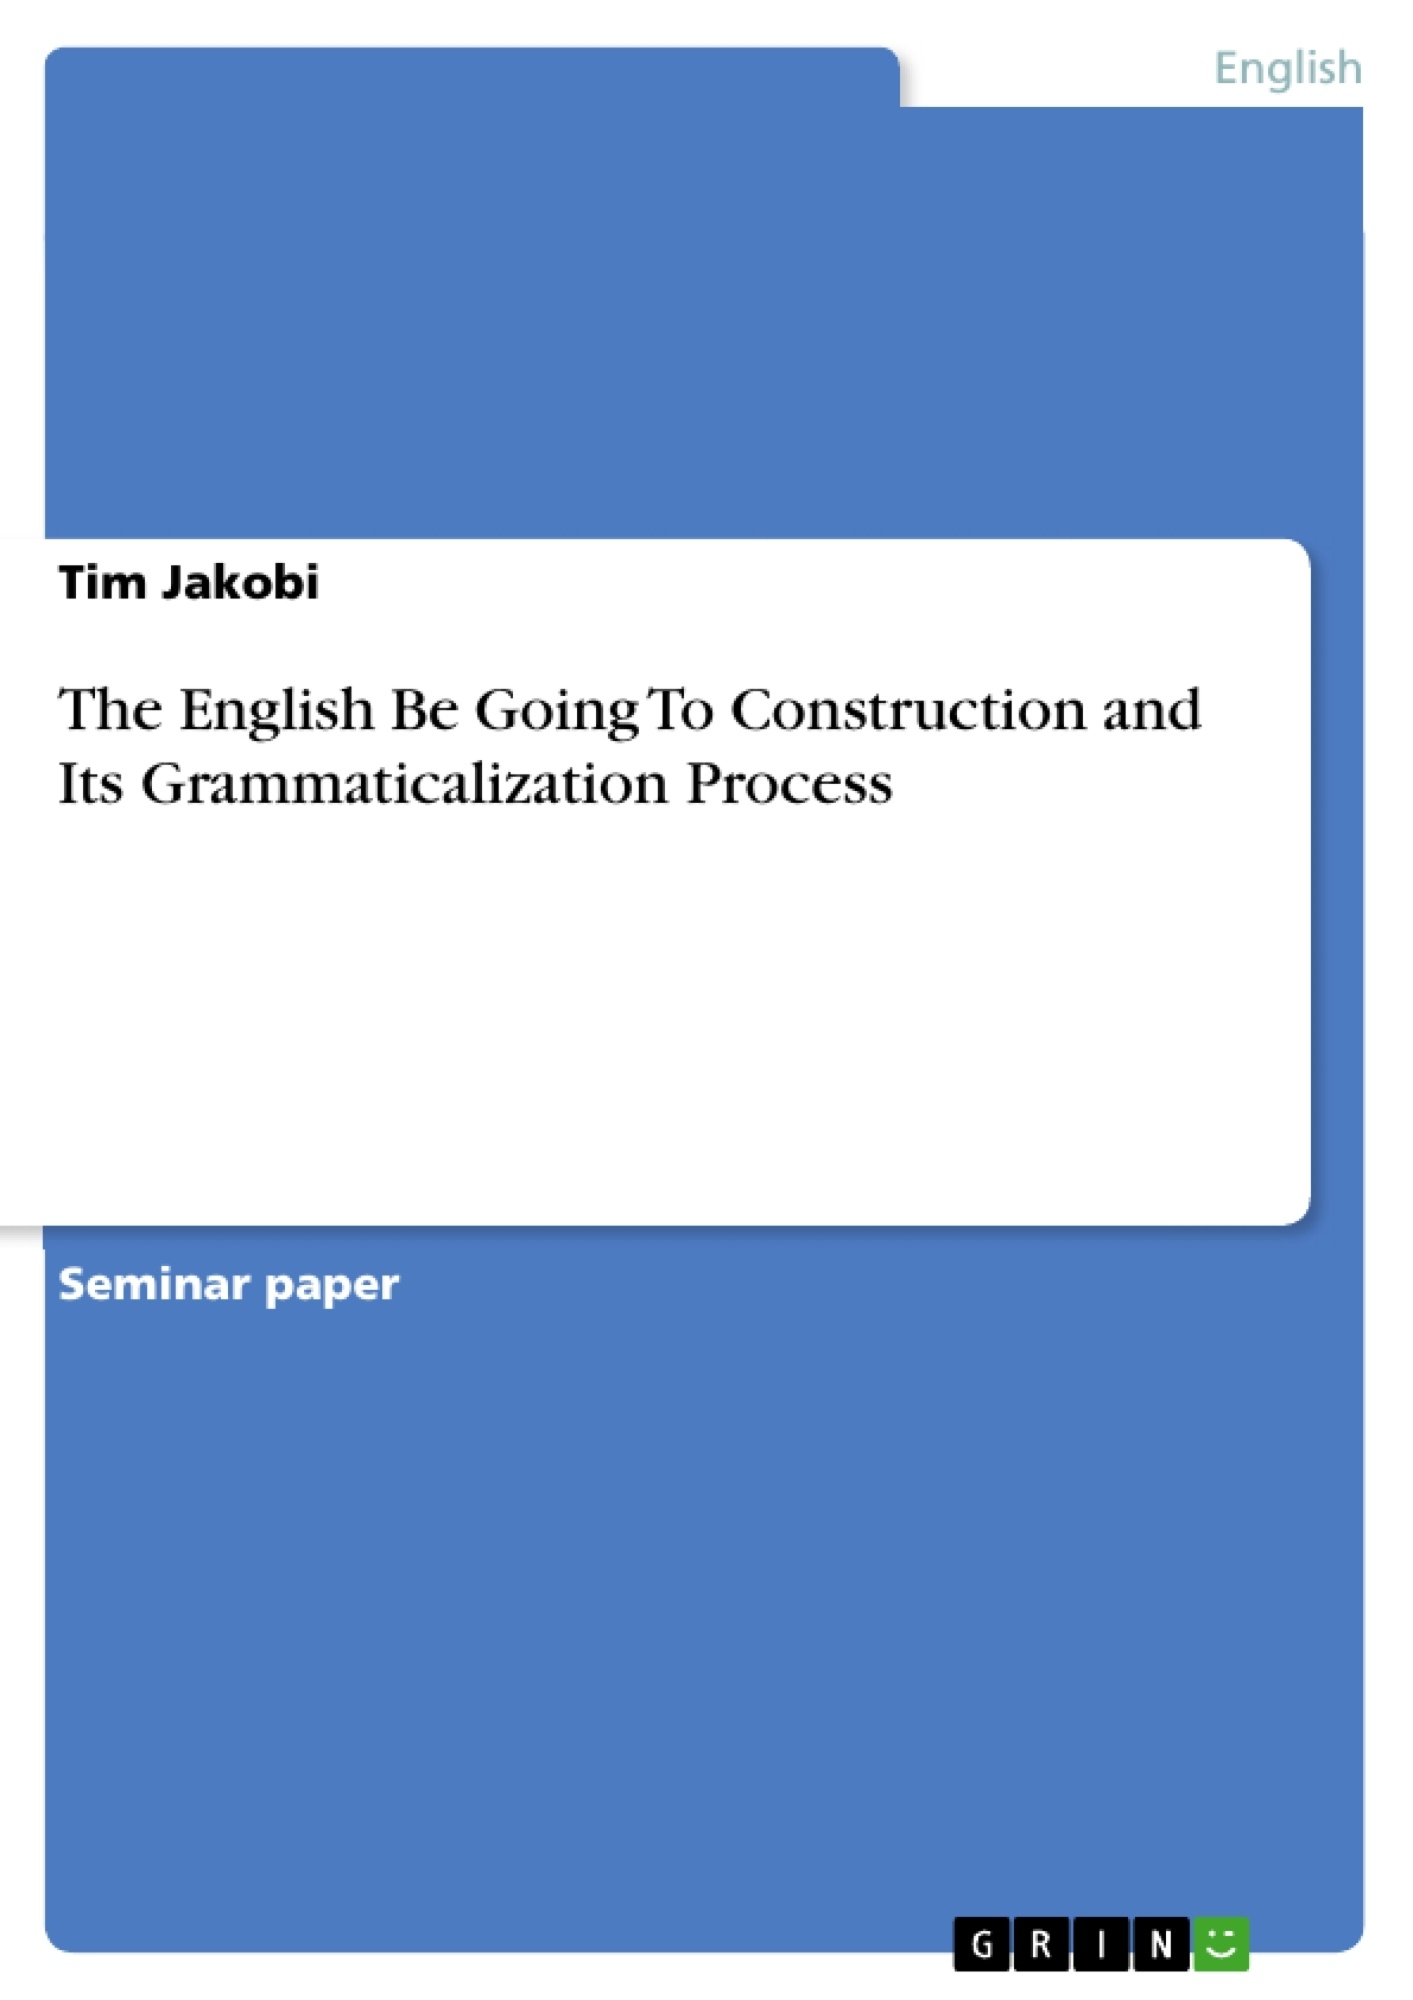 Title: The English Be Going To Construction and Its Grammaticalization Process